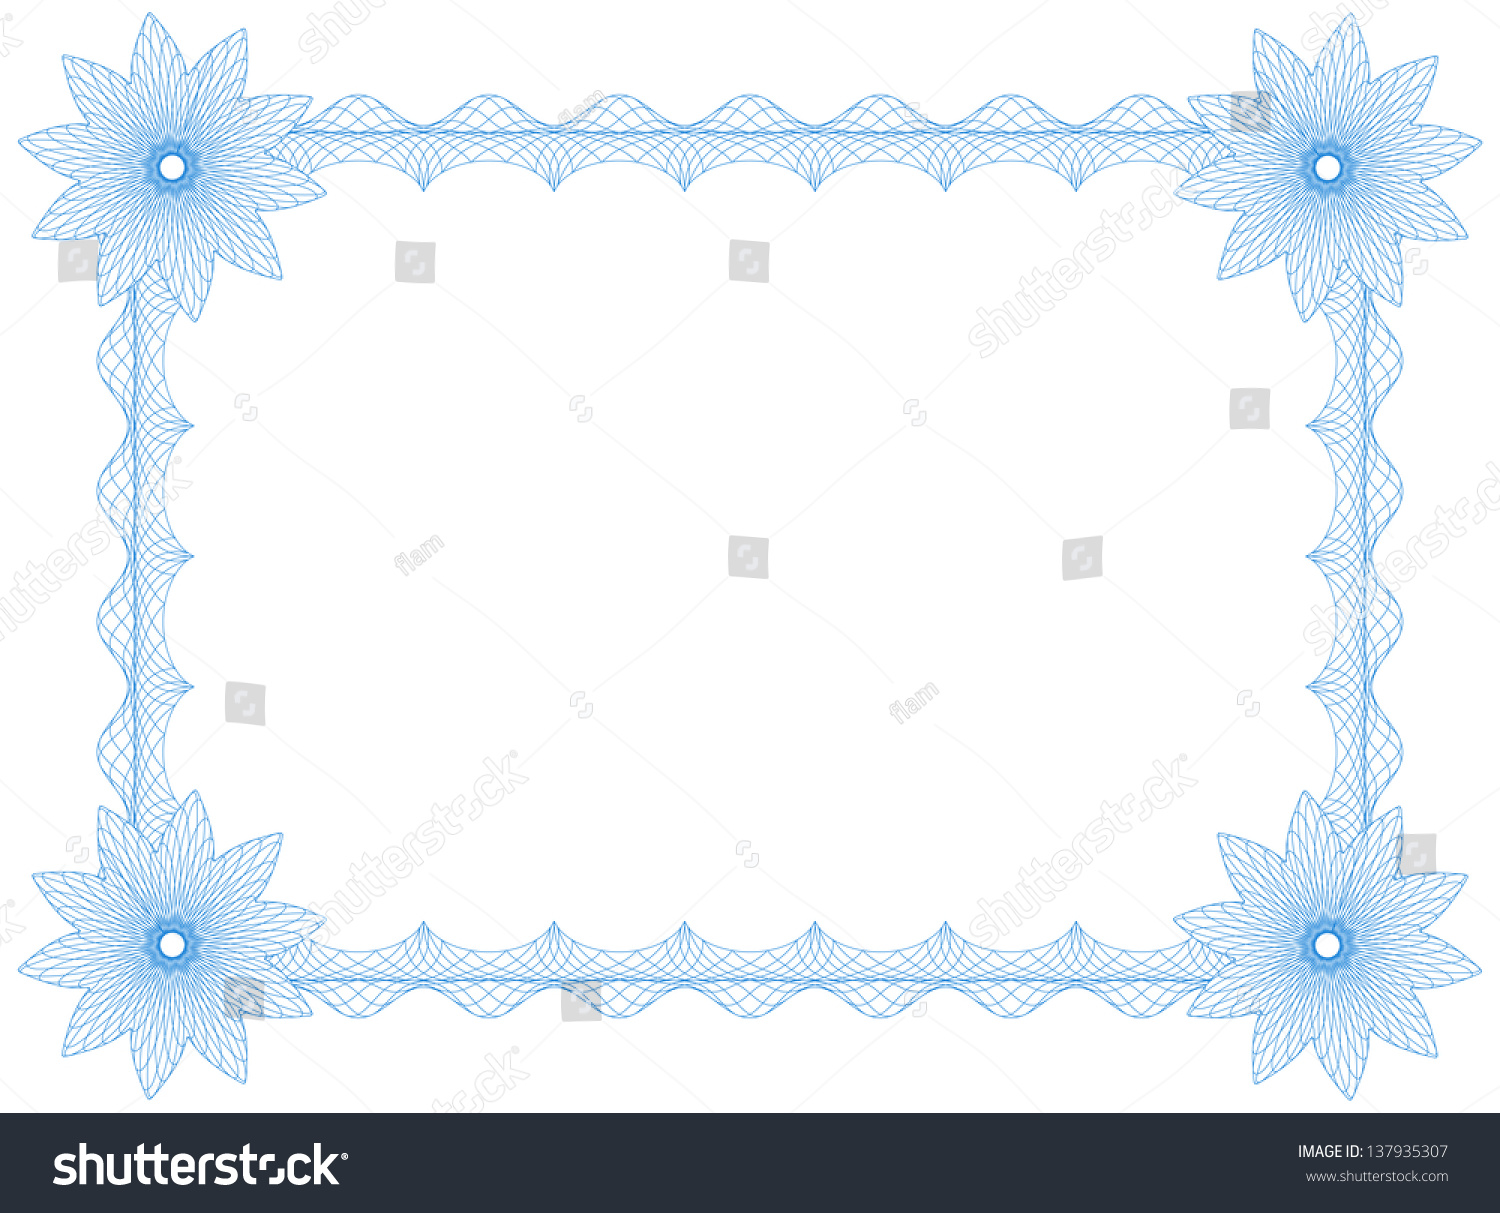 Frame Flowers Border Size A 4 Stock Vector Royalty Free 137935307